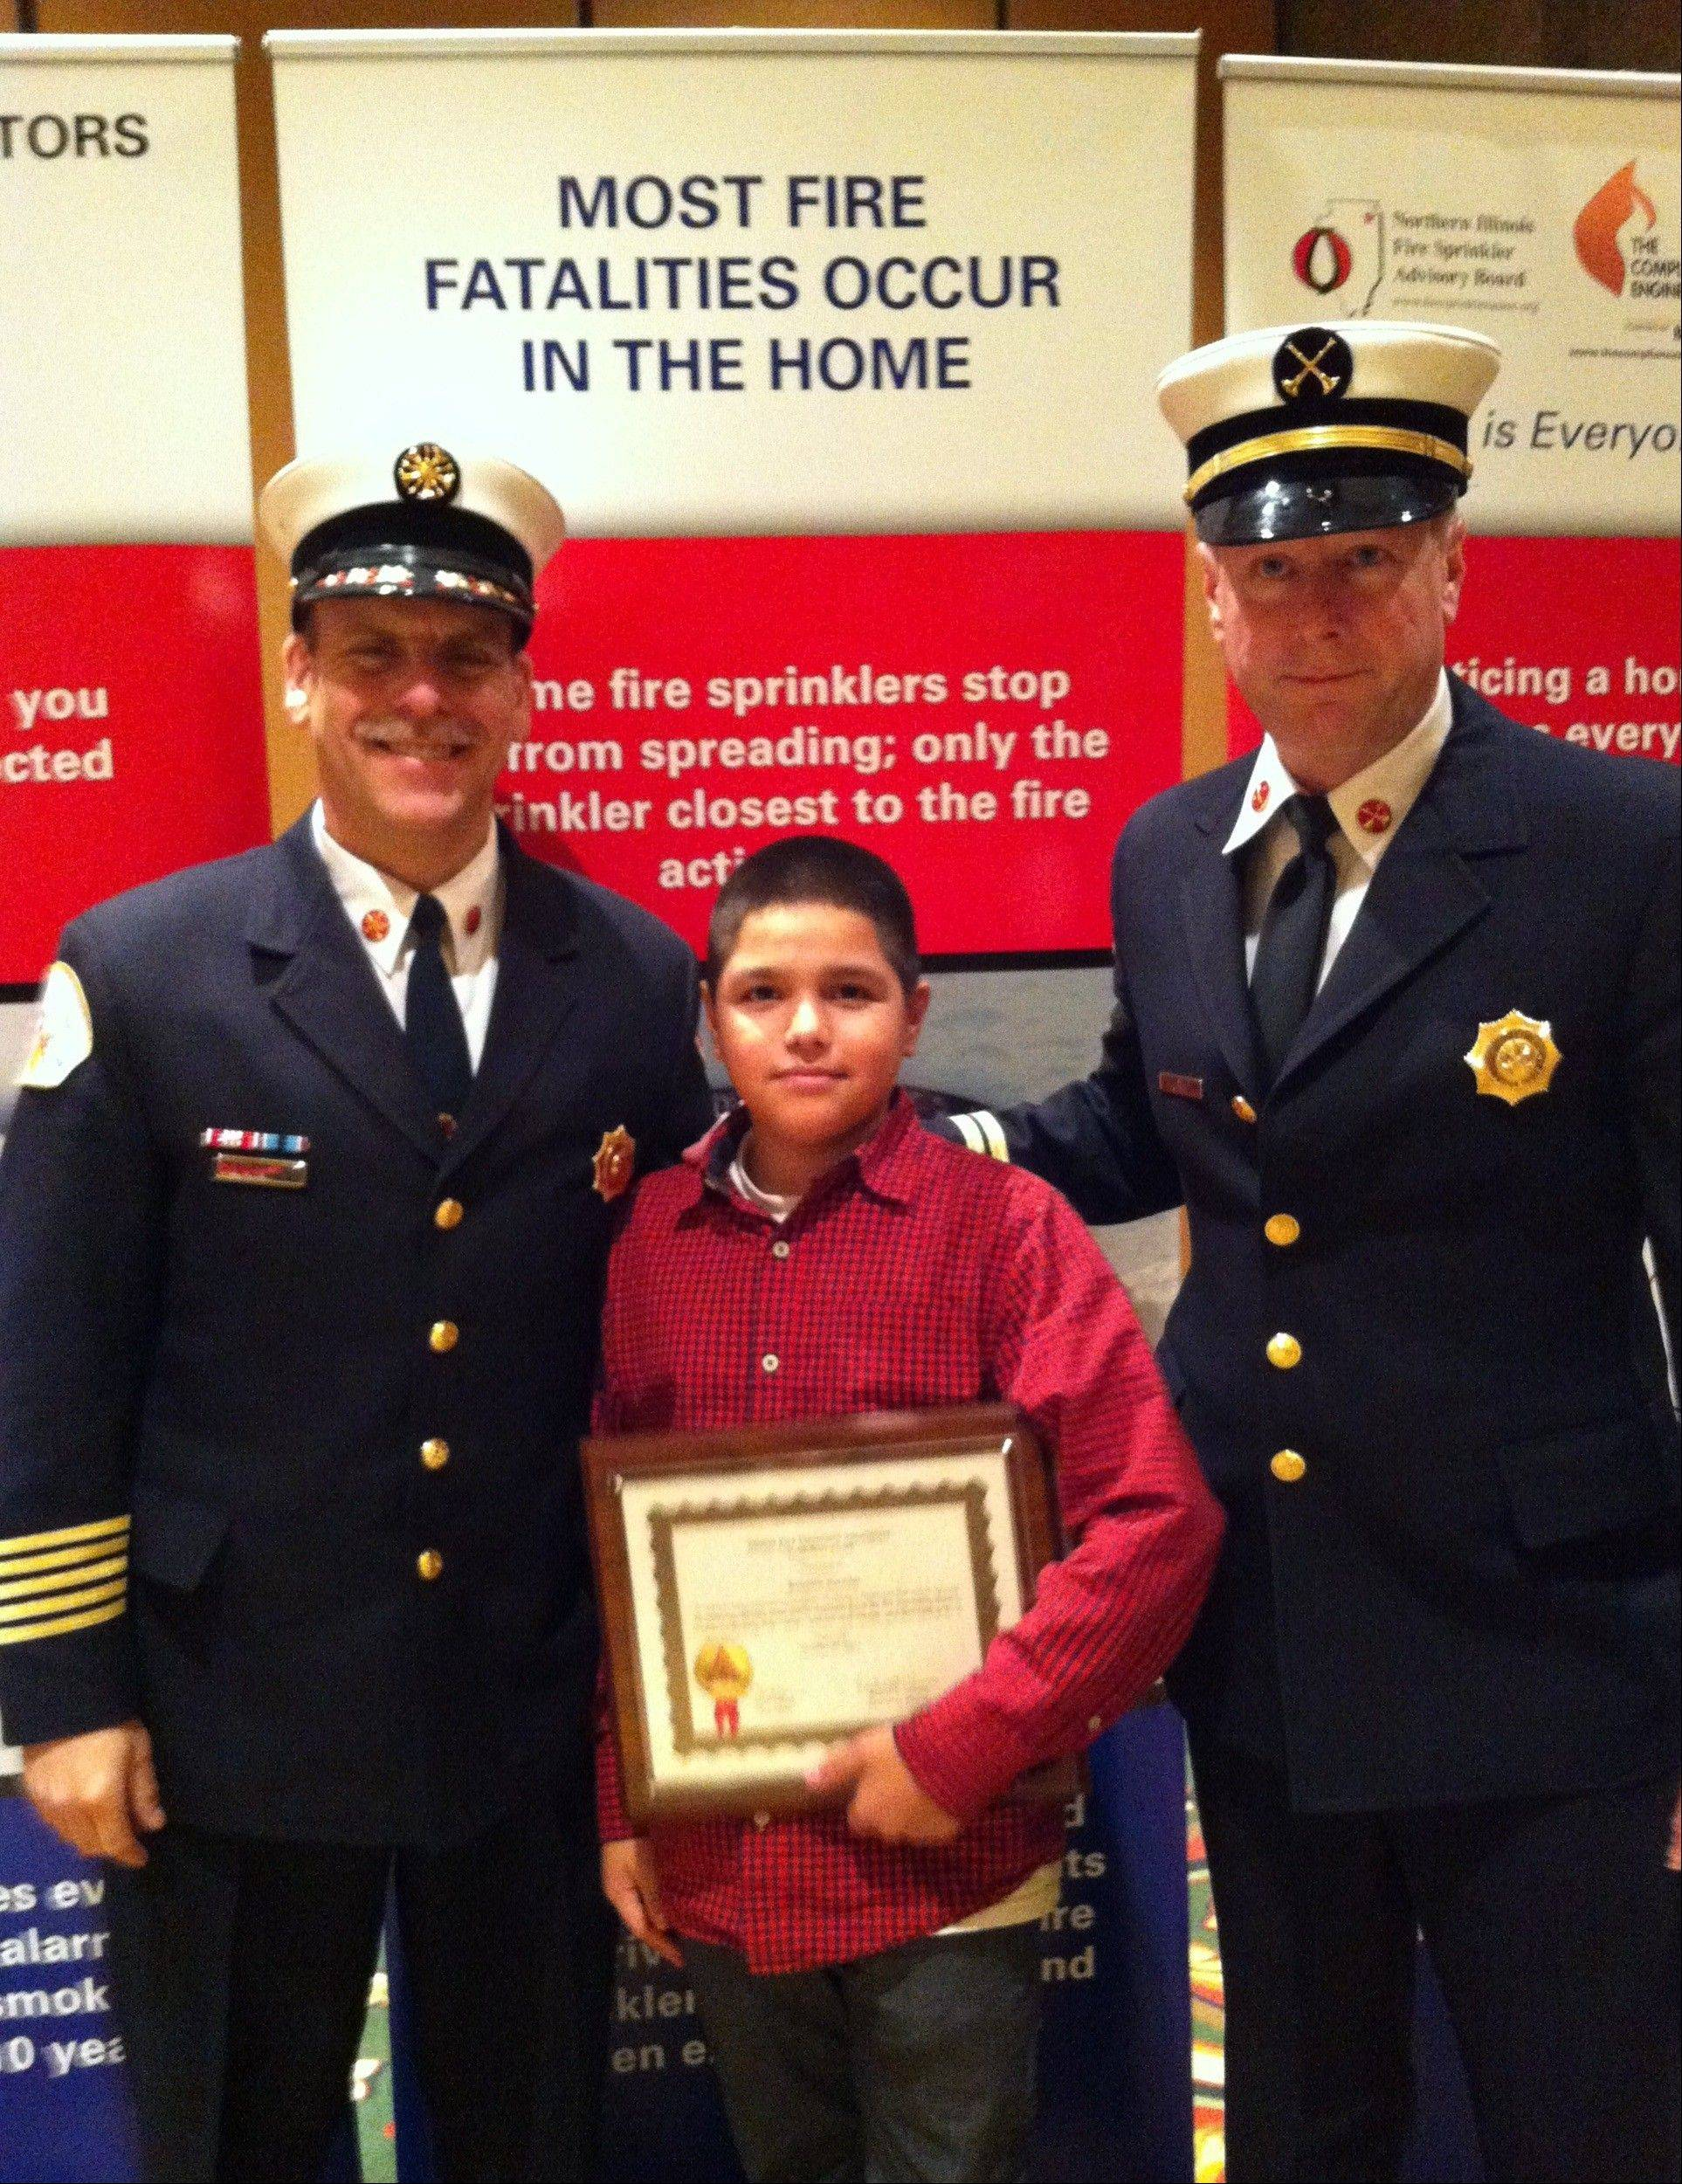 Pictured, from left, Des Plaines Fire Department Chief Alan Wax, Des Plaines resident Benjy Banuelos, displaying his Youth Hero Award, and Division Chief of Fire Prevention Jeff Schuck pose in front of a new fire safety banner created by the Inspectors Association at the Illinois Fire Inspectors Association Award Luncheon, Friday, Oct. 26.